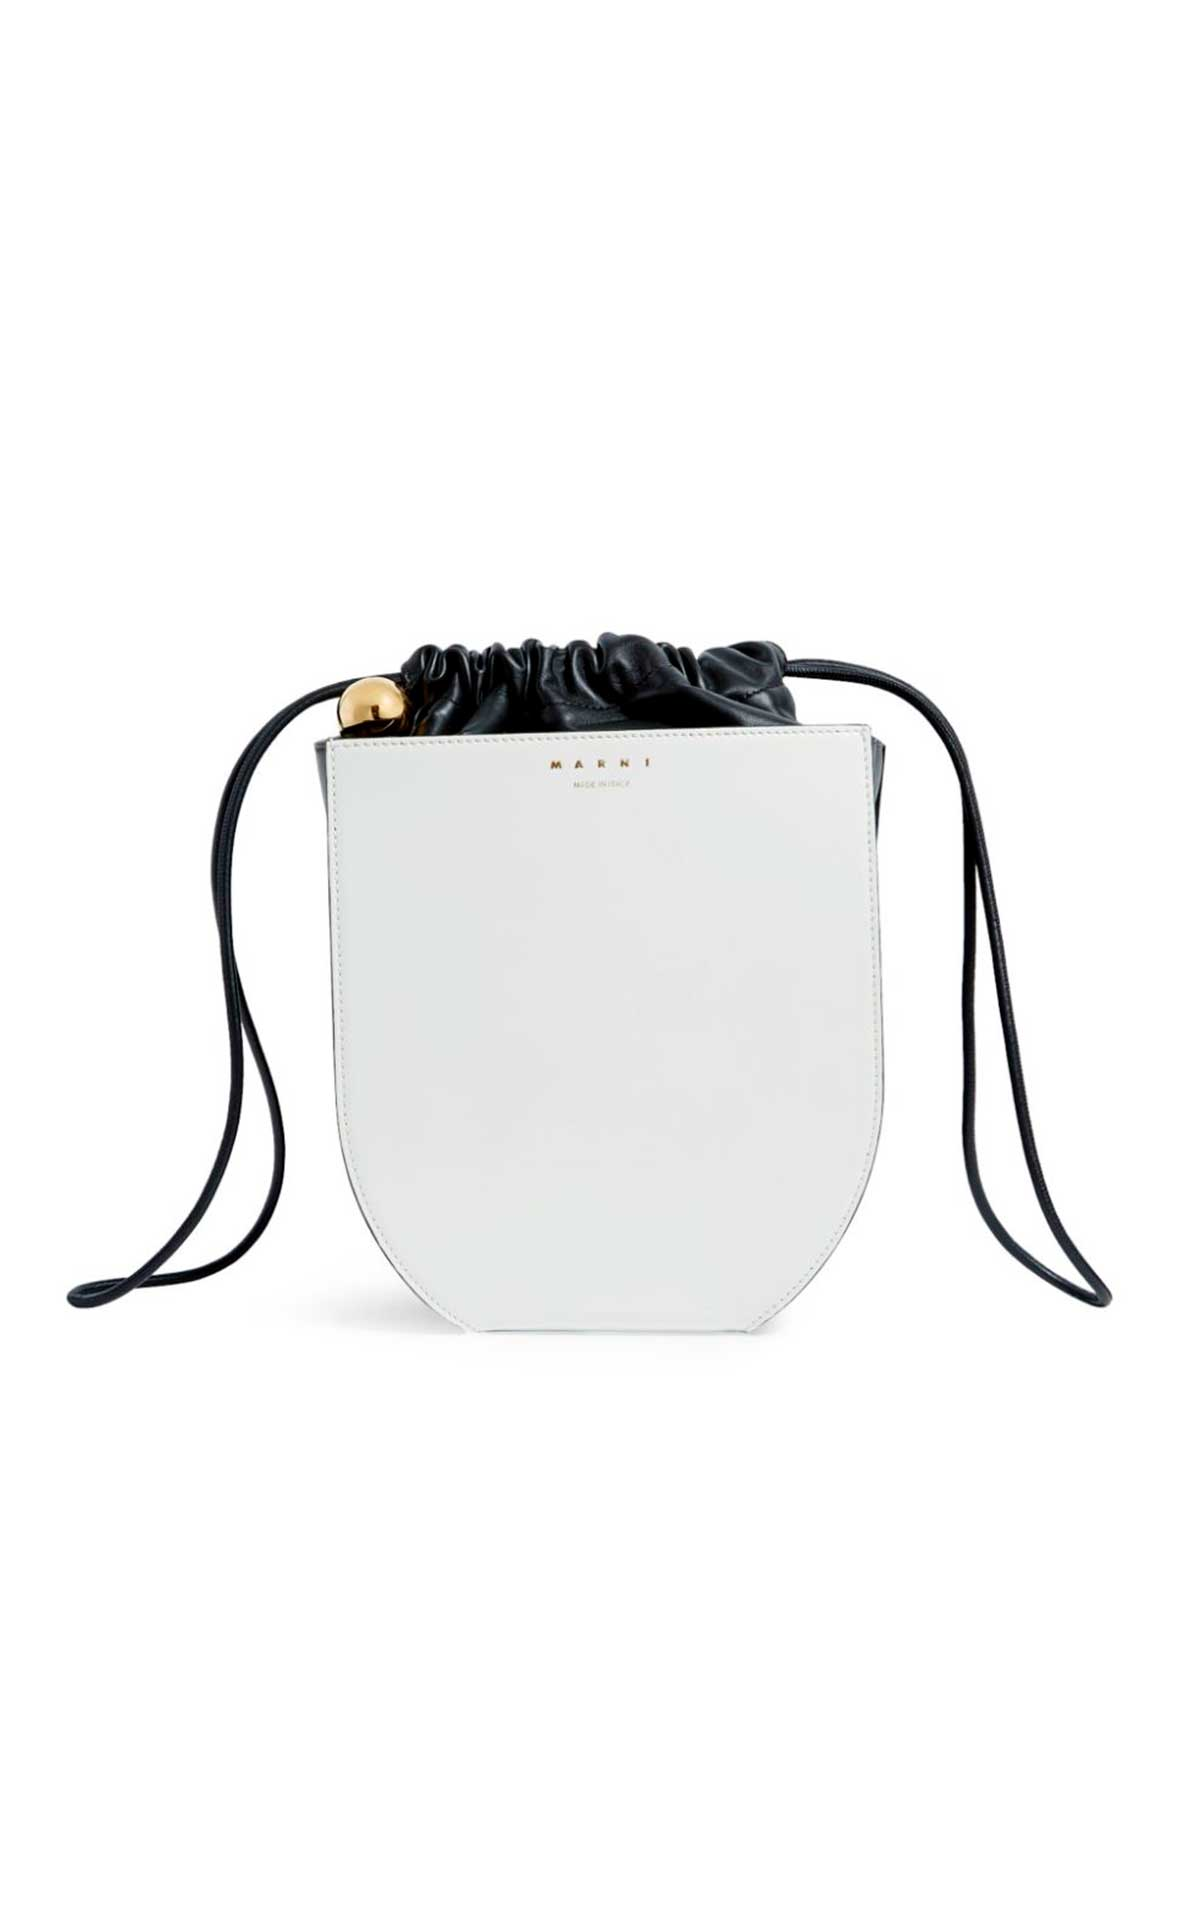 White bucket bag Marni